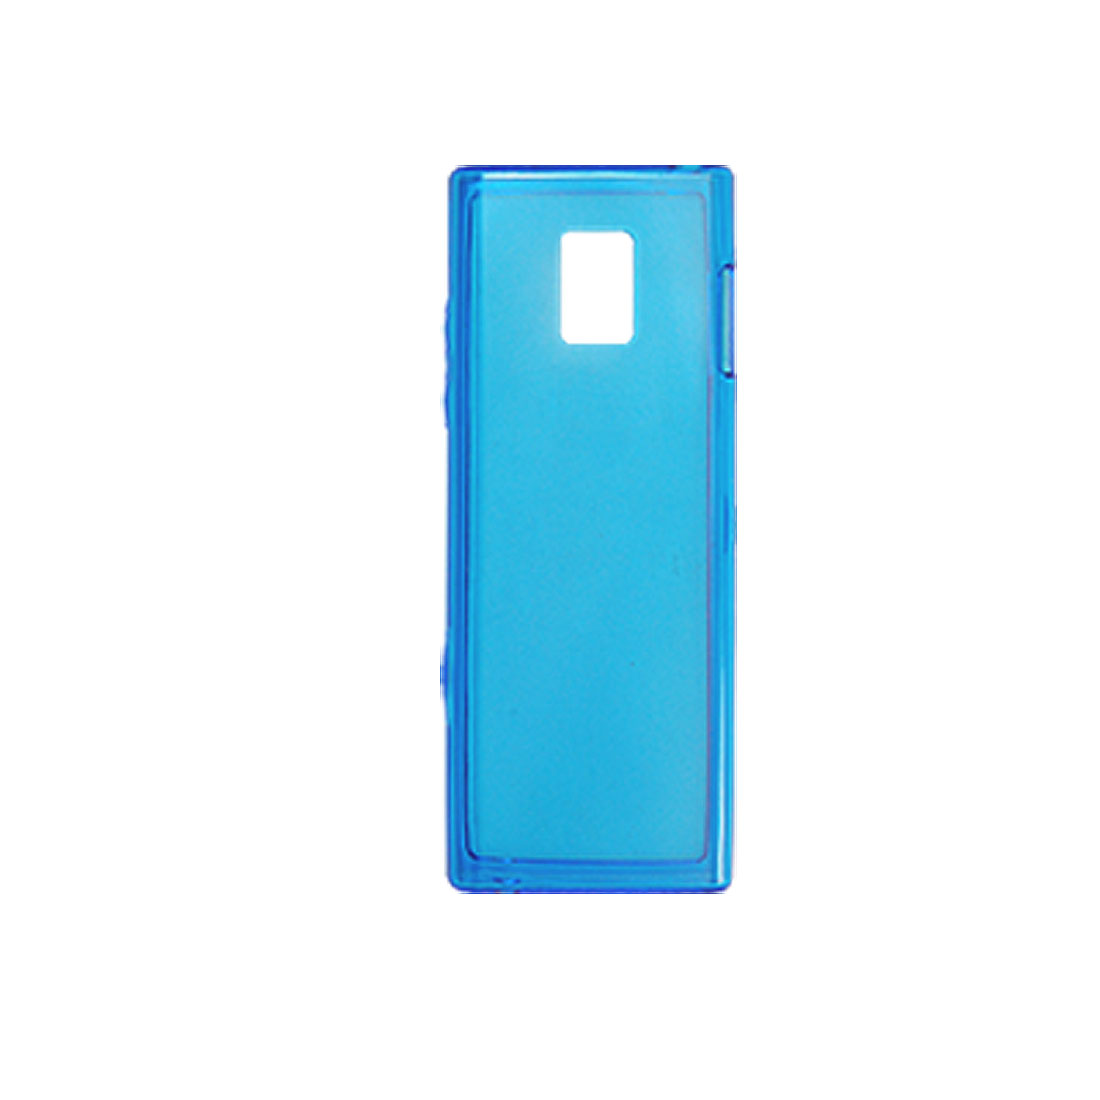 Soft Plastic Blue Case Shell Cover Protector for LG BL40e